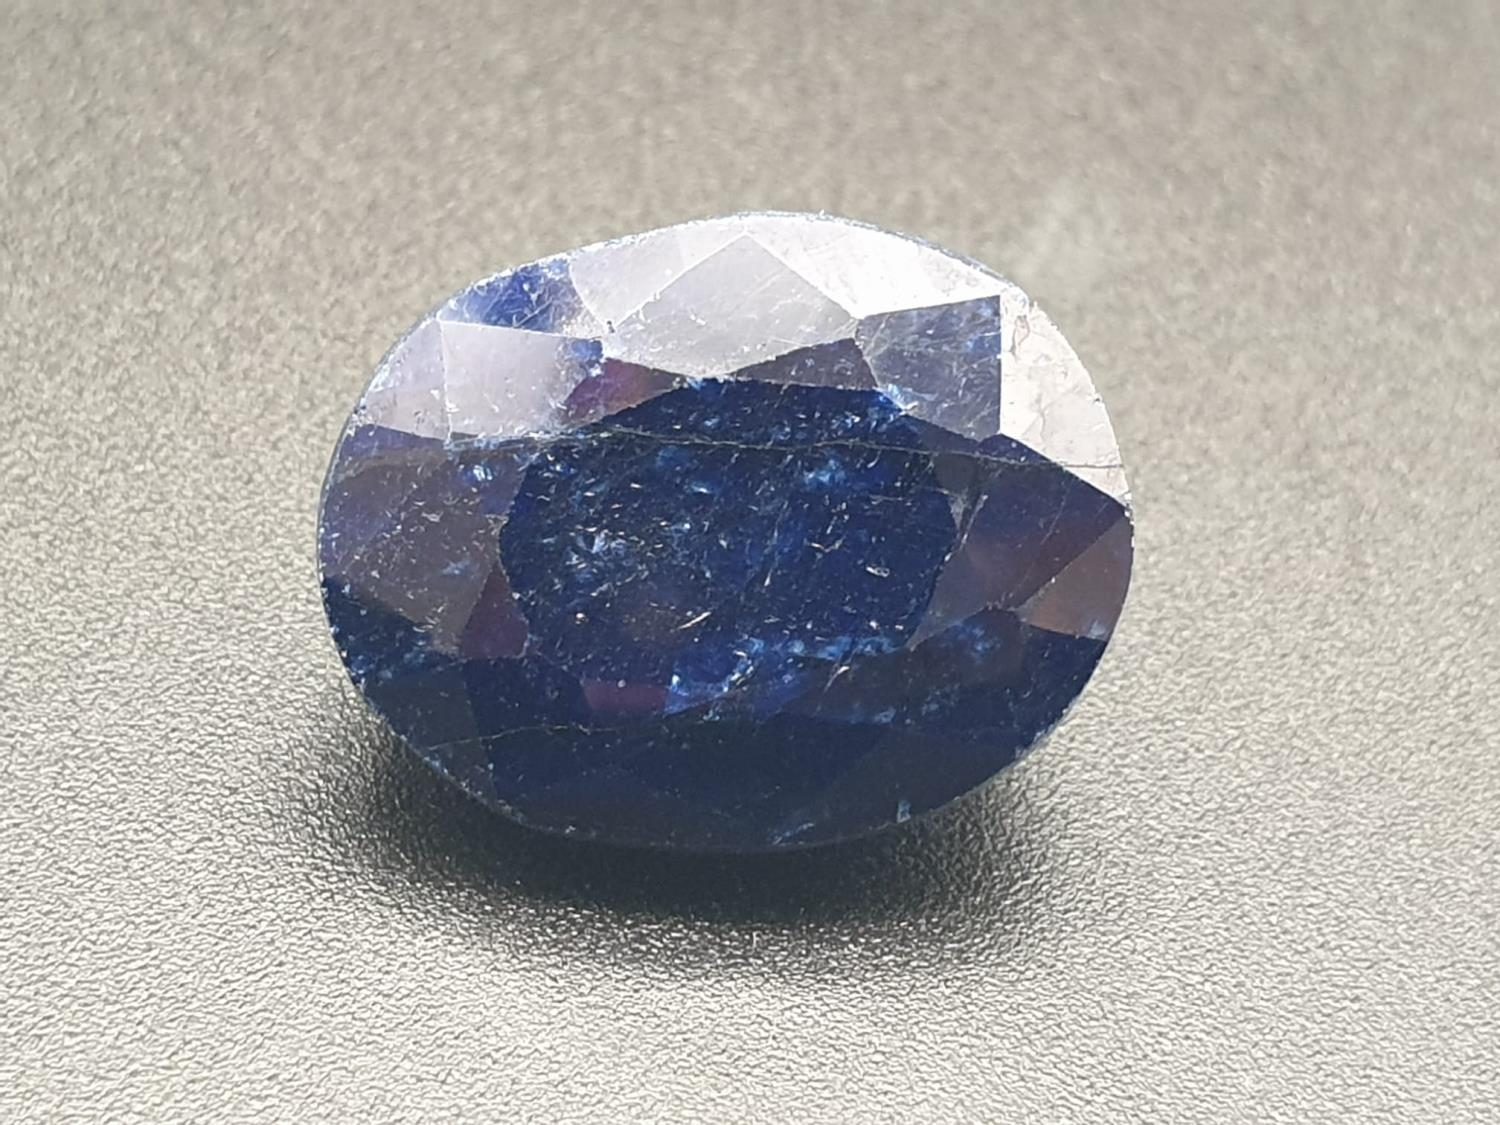 28.44 Cts Natural Sapphire stone Oval cut. IDT certified